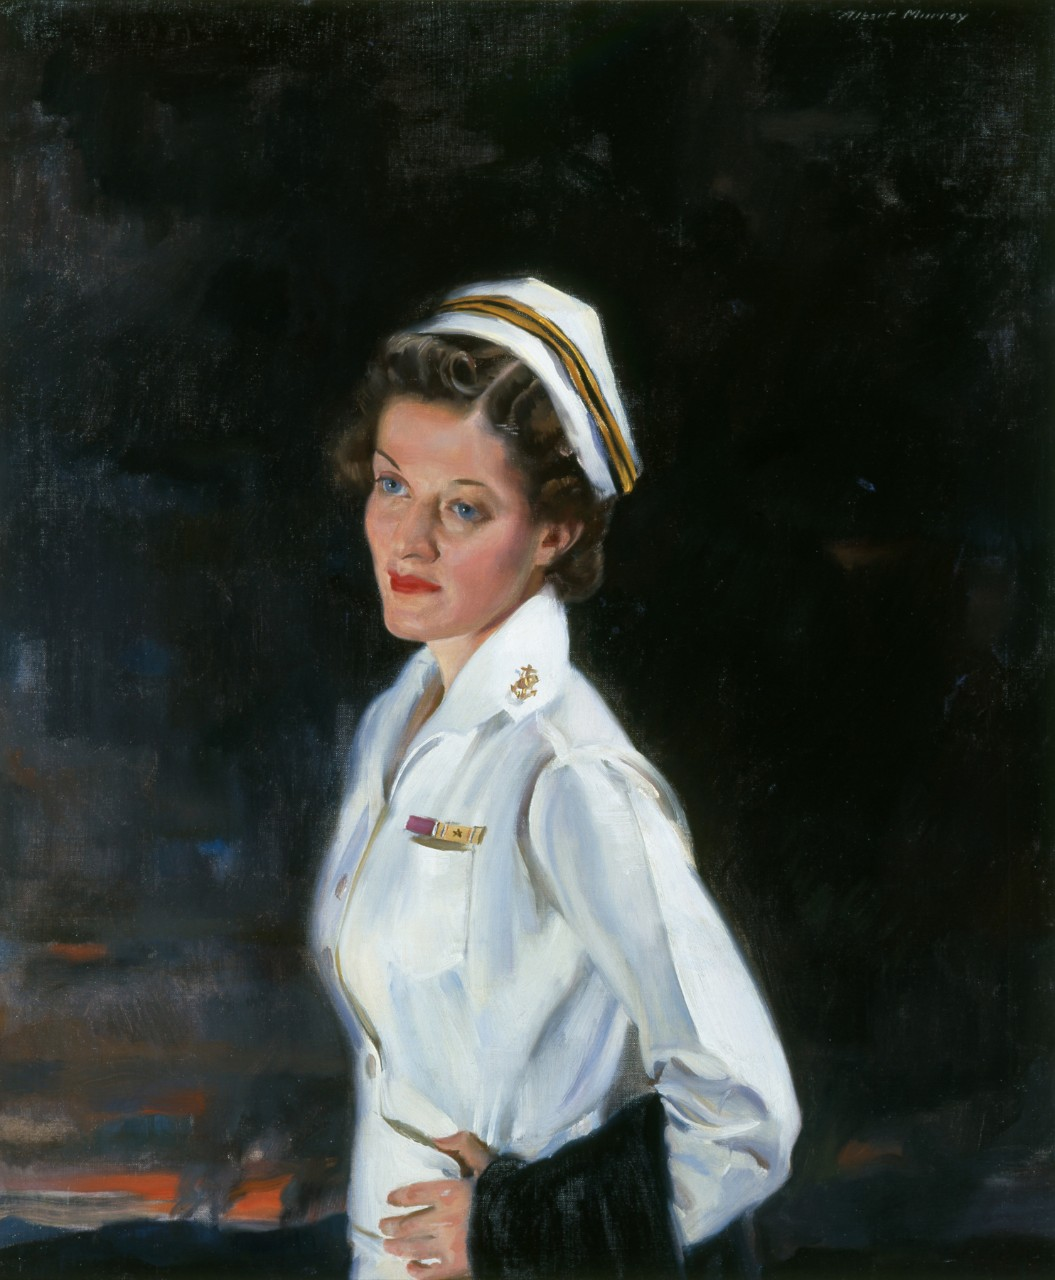 Ann Bernatitus in a white nurses uniform